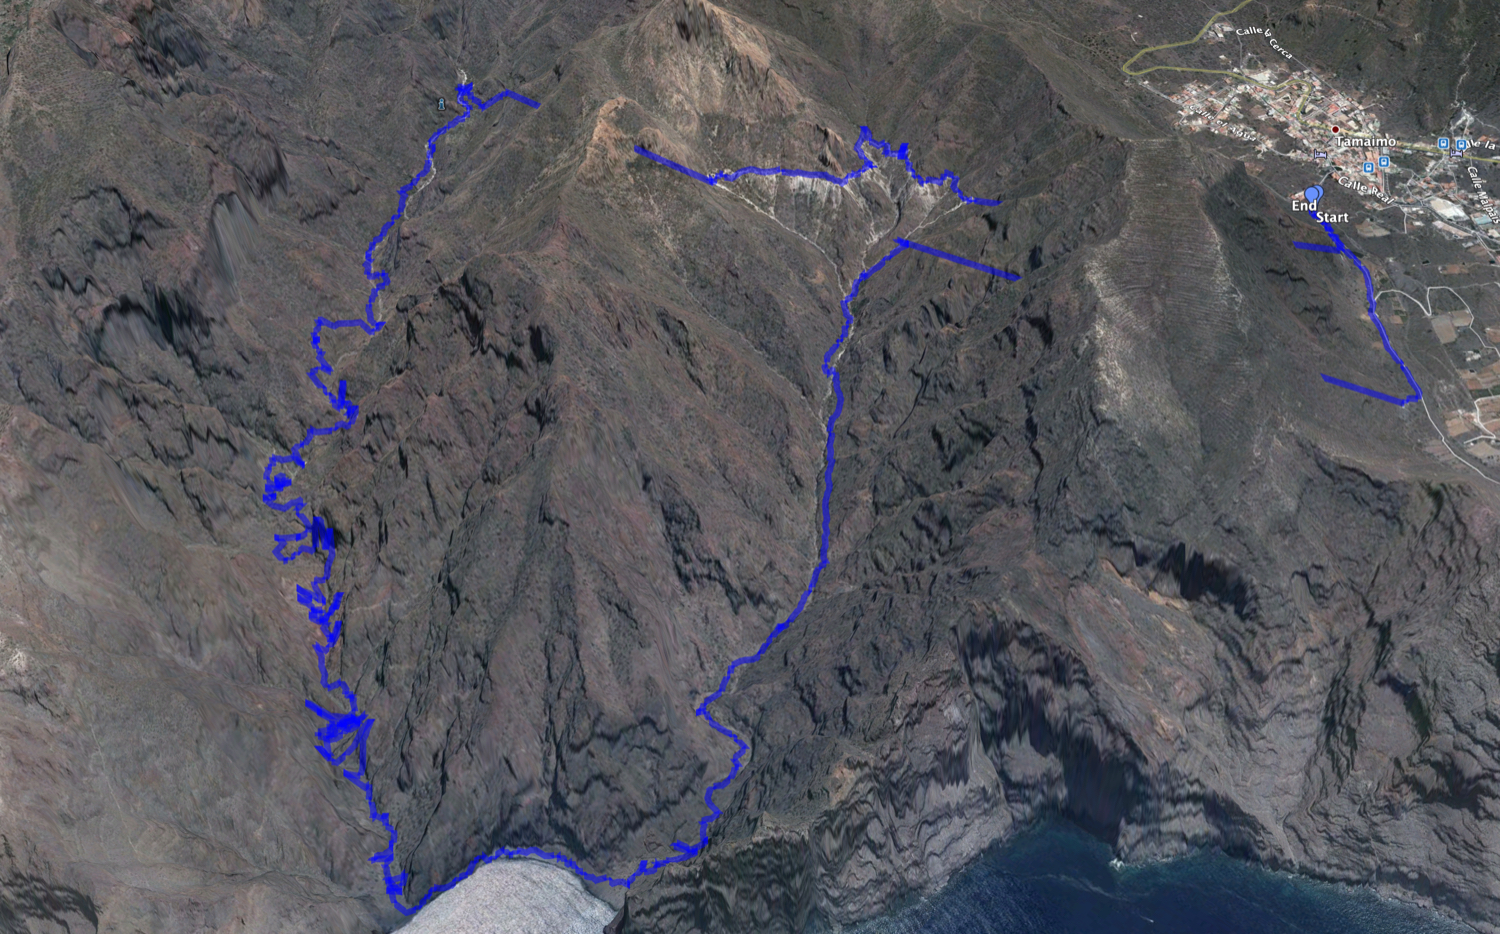 Track of the hike from Tamaimo across the White Channel and back through the Barranco Natero and Barranco Seco